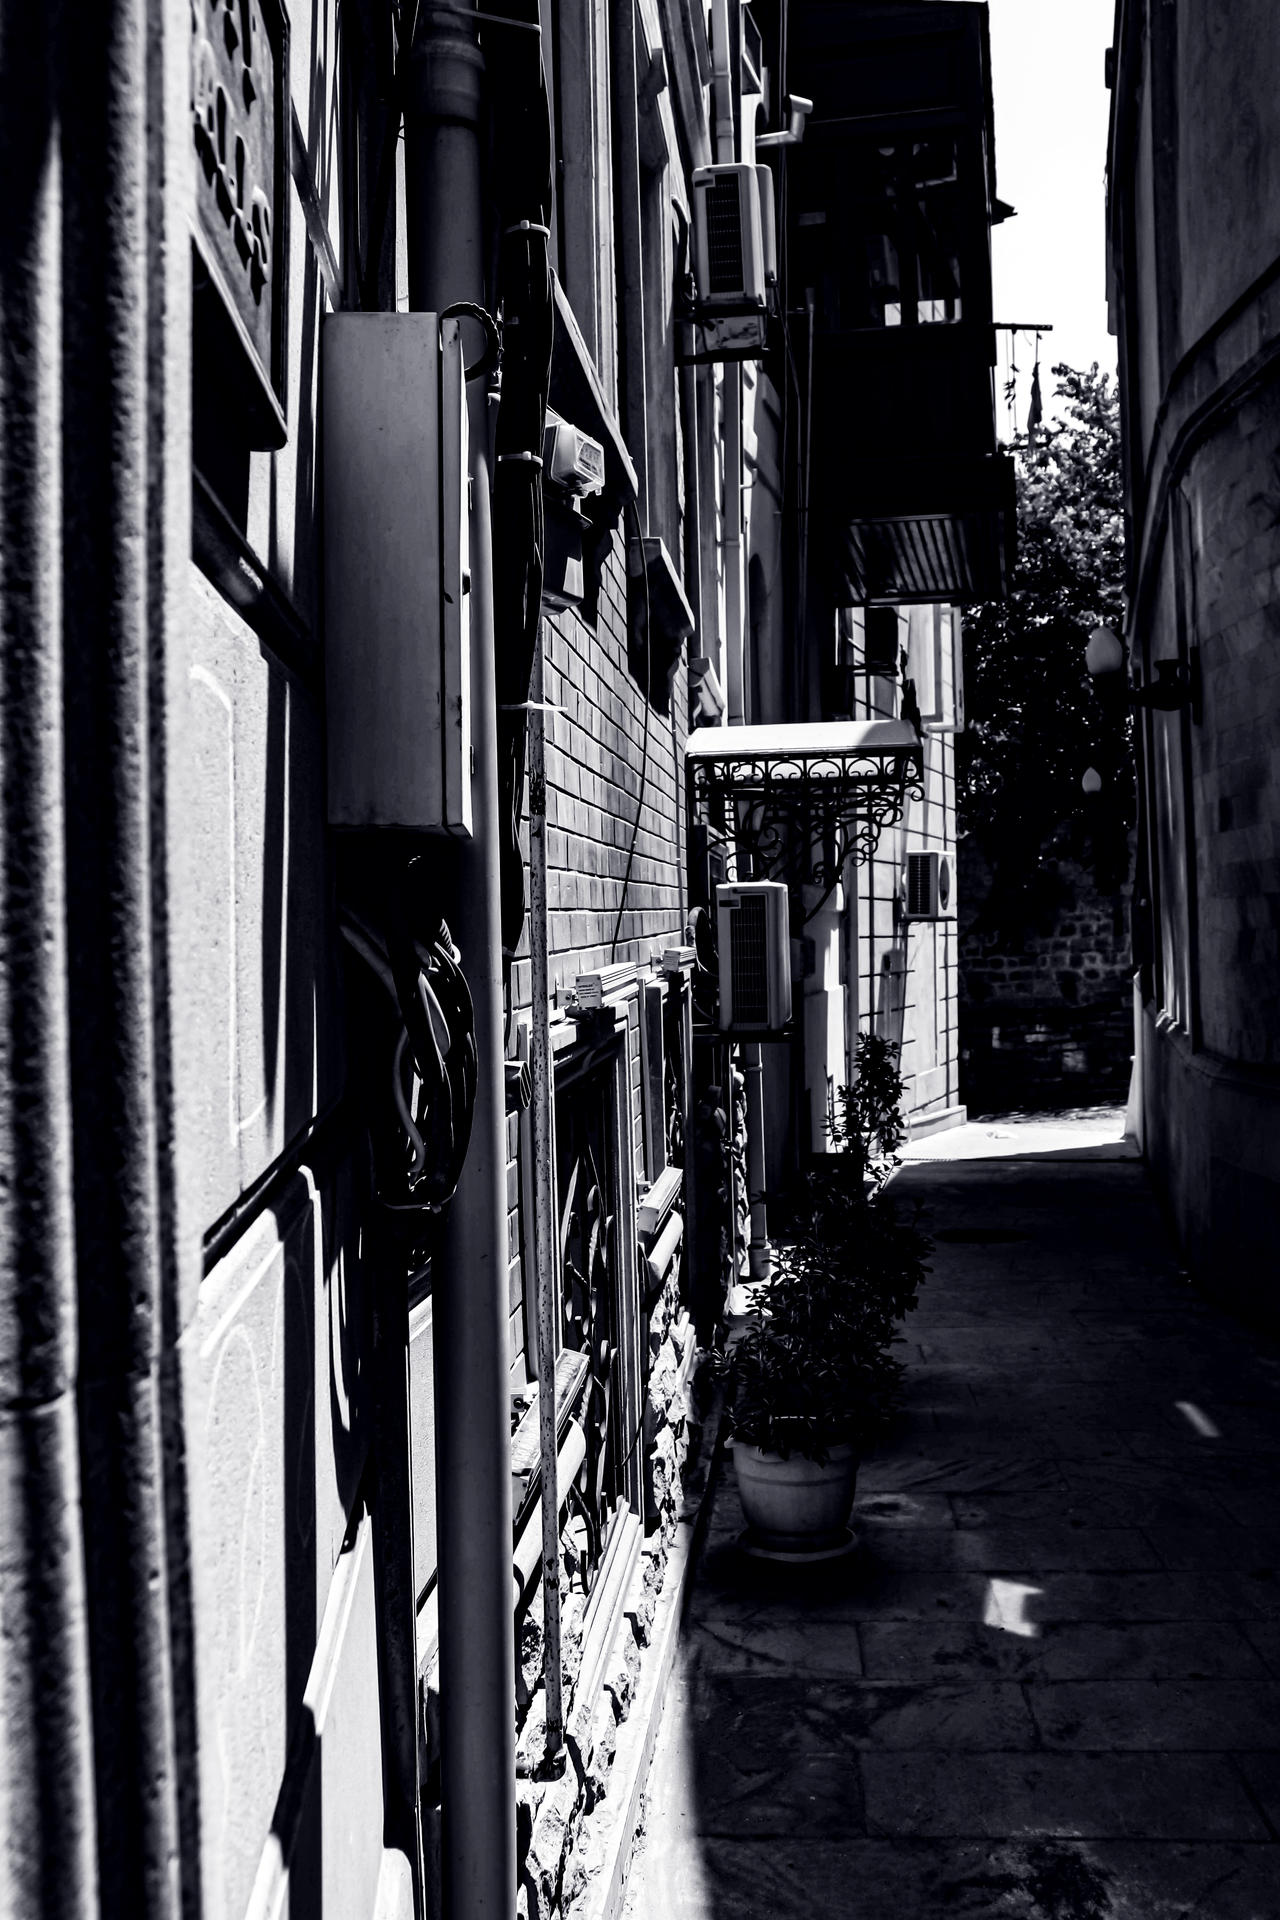 Black and white style in Old City (darkness)